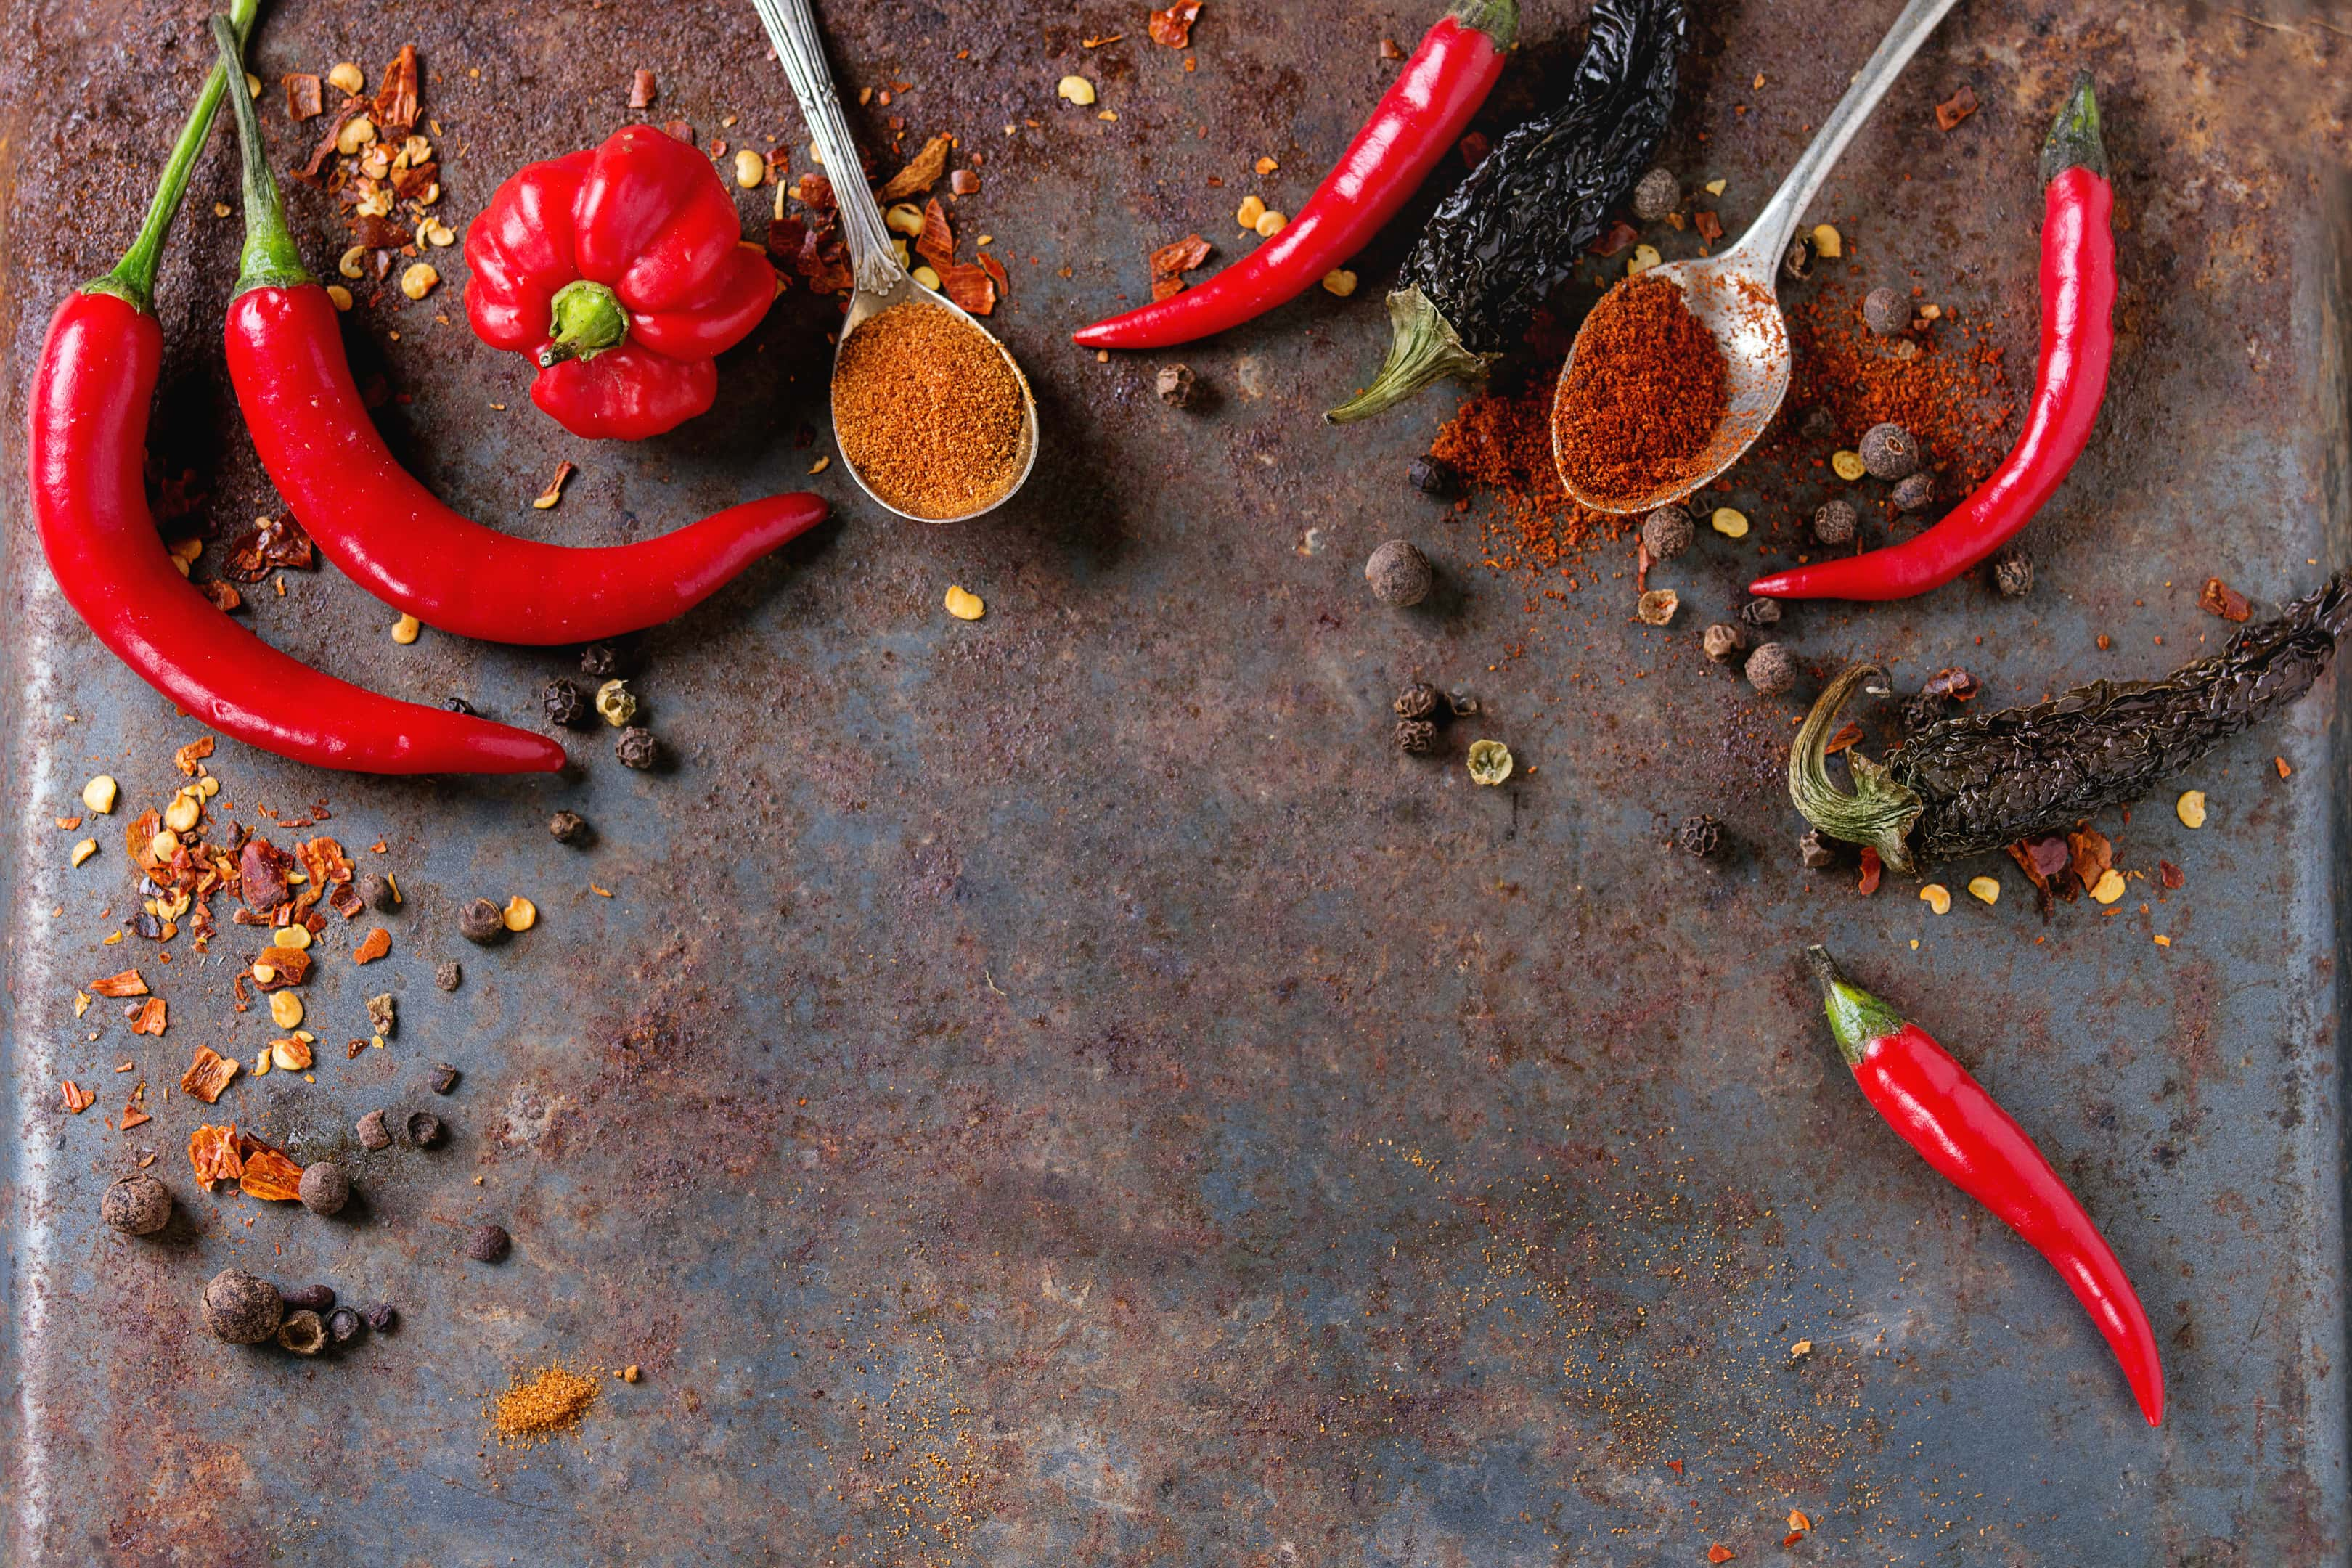 Spicy chipotle powder with fresh red chili peppers